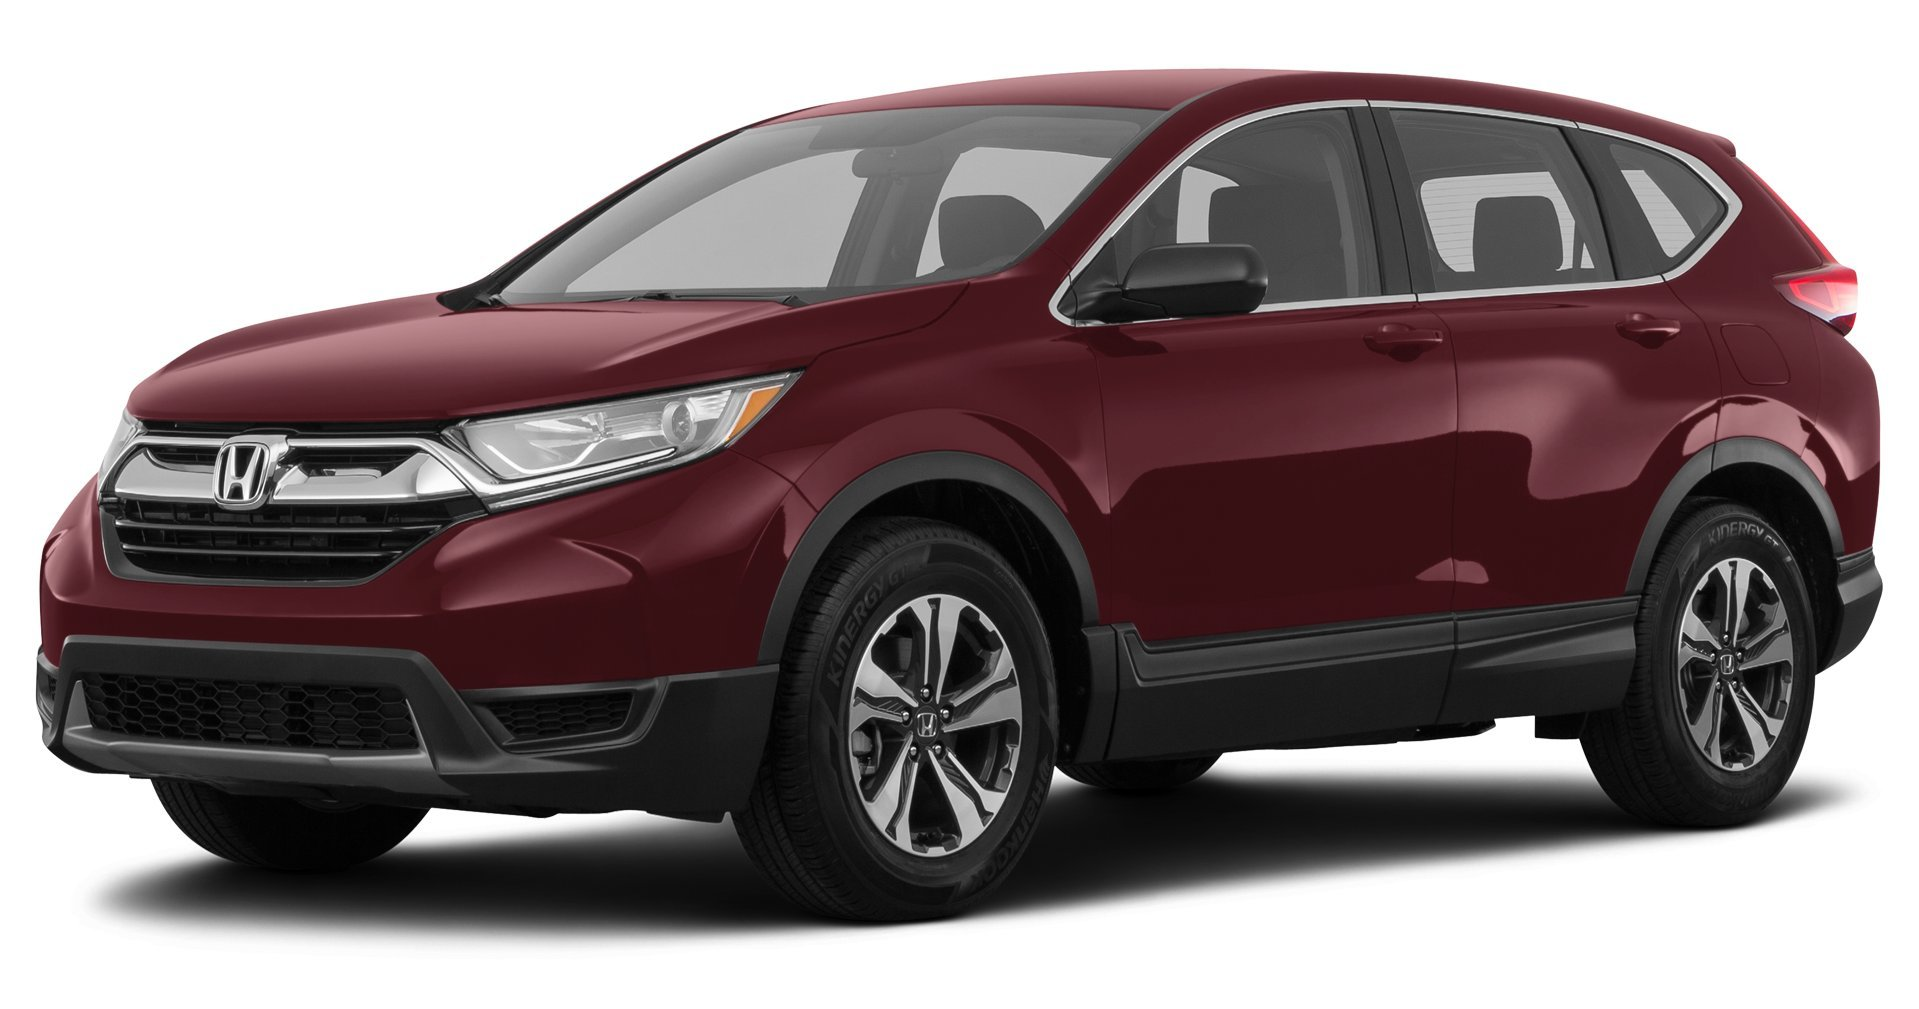 Honda Online Store 2009 Crv Tailgate Parts 2018 Cr V Reviews Images And Specs Vehicles Ex 2 Wheel Drive